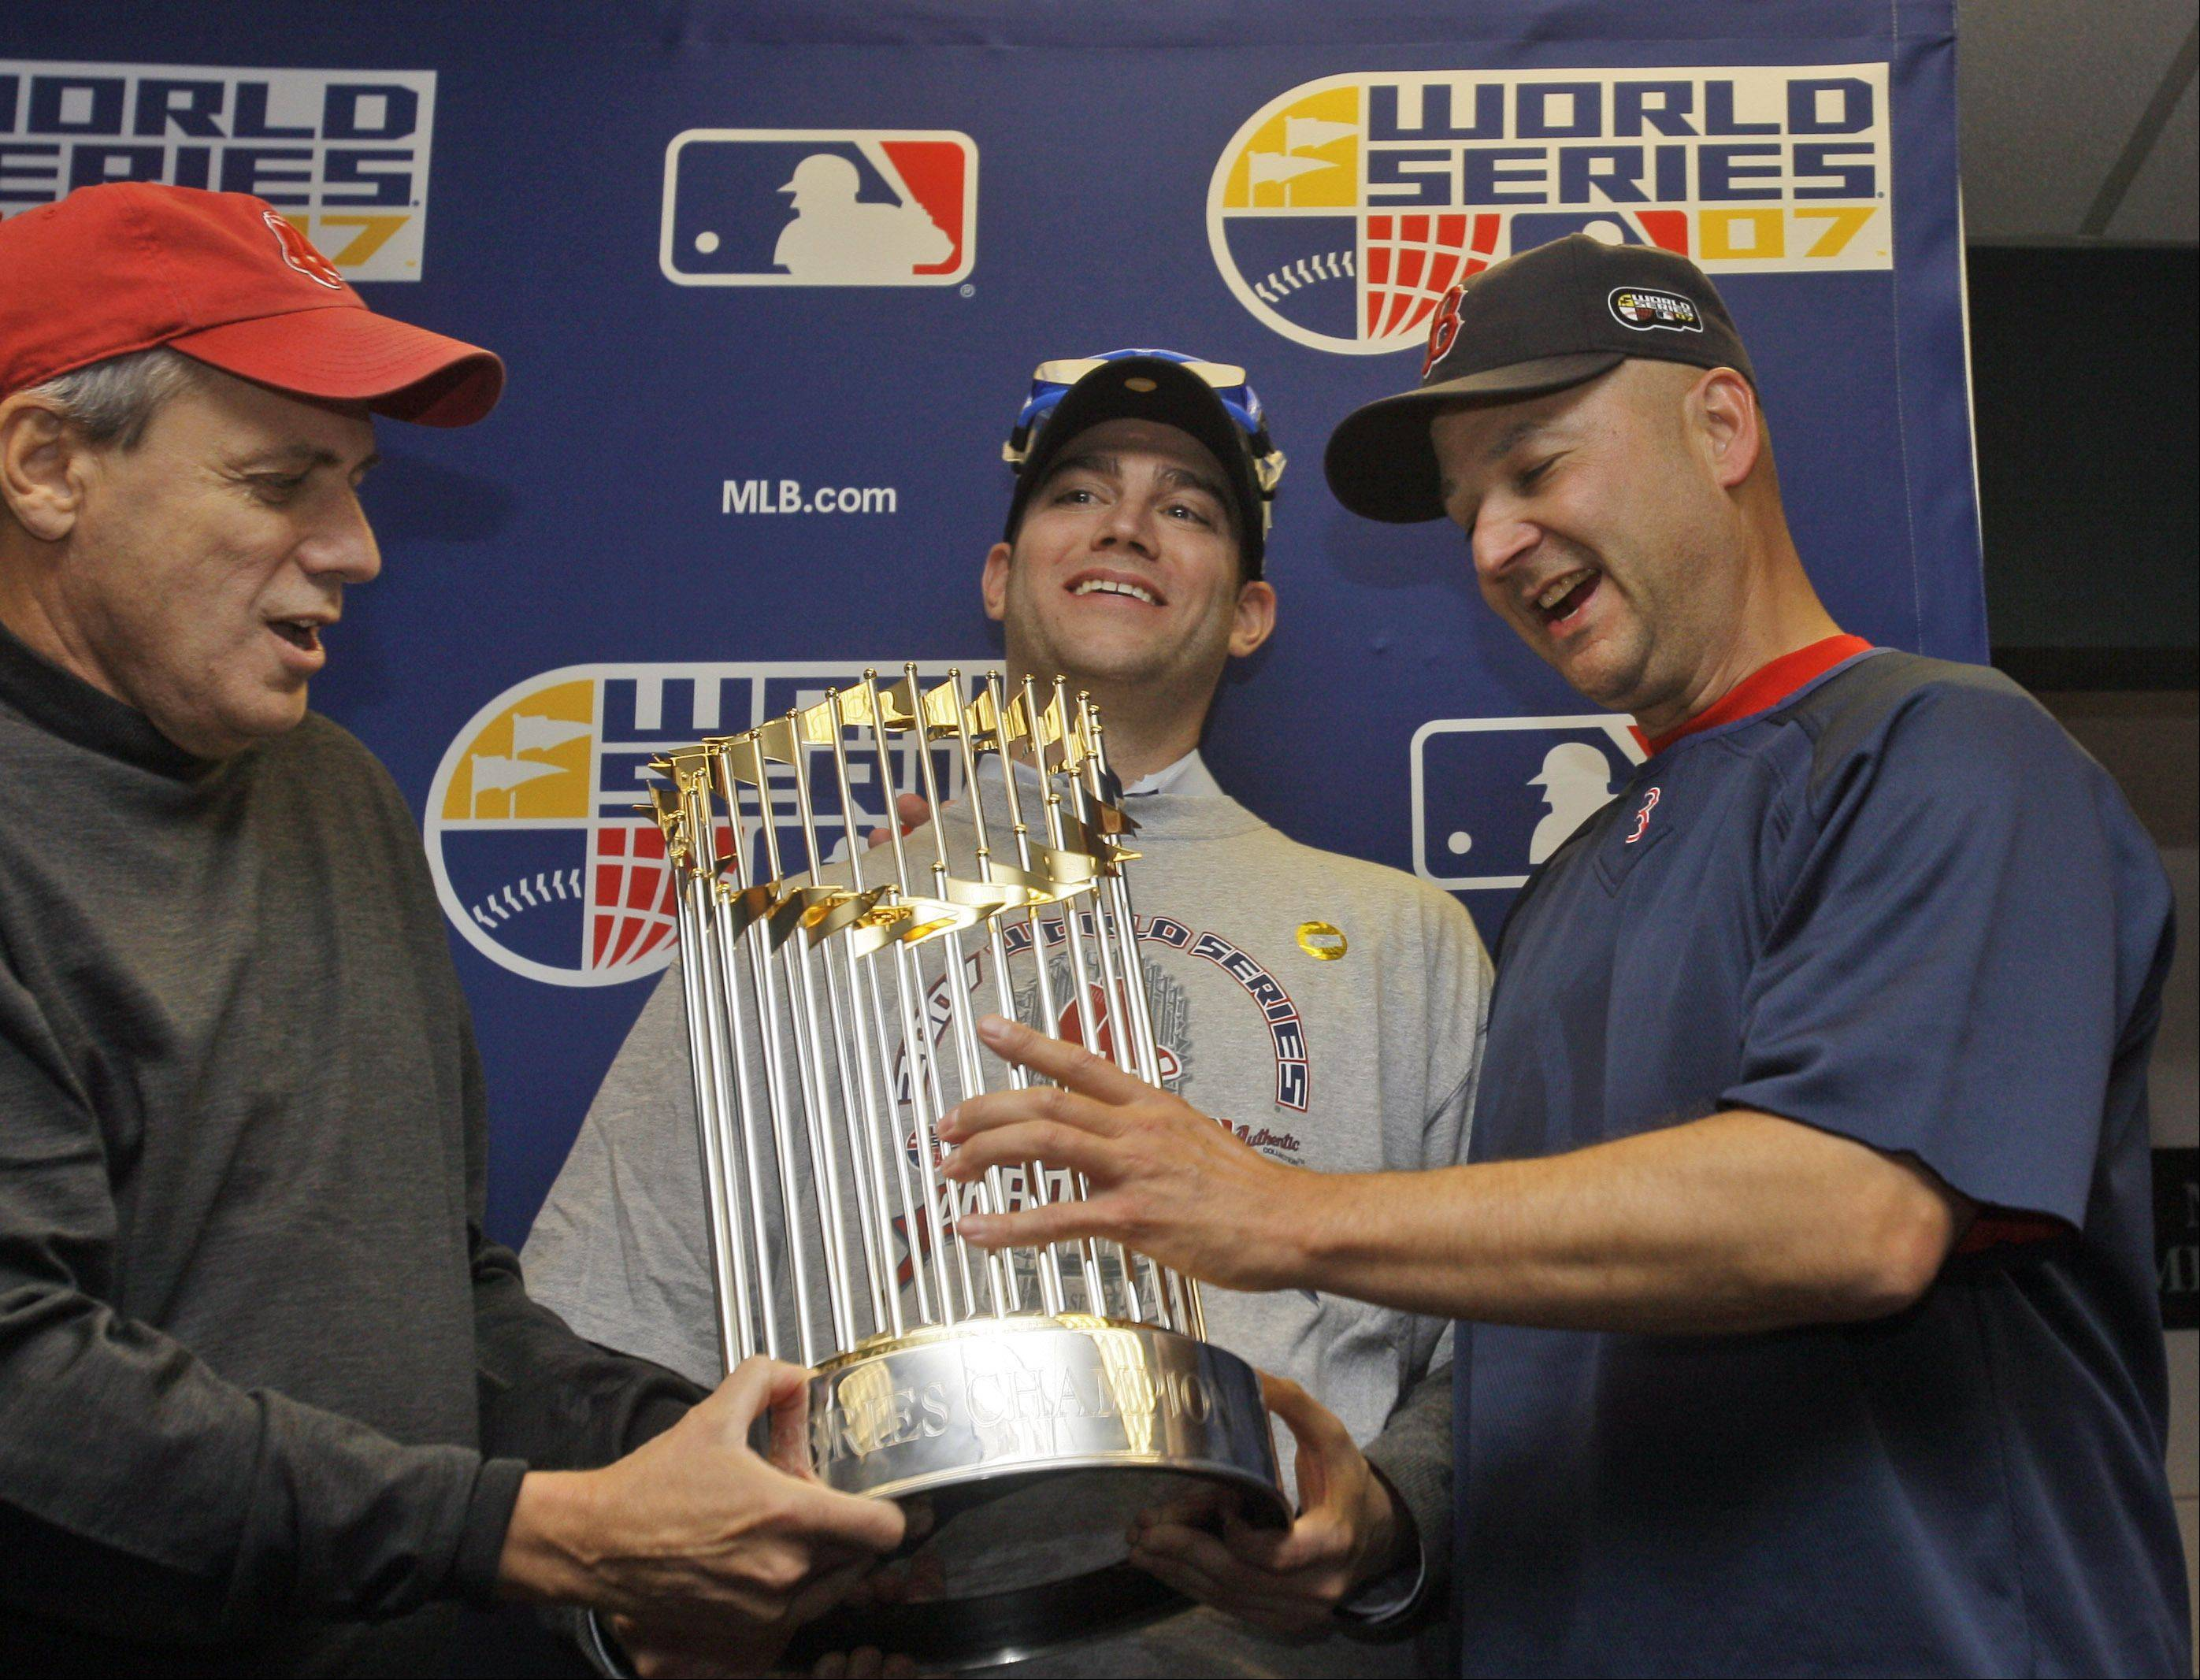 Boston Red Sox president Larry Lucchino, left, general manager Theo Epstein, center, and manager Terry Francona hold the World Series trophy after Boston beat the Colorado Rockies, 4-3, in Game 4 Sunday, Oct. 28, 2007, at Coors Field in Denver, to sweep the series 4-0.